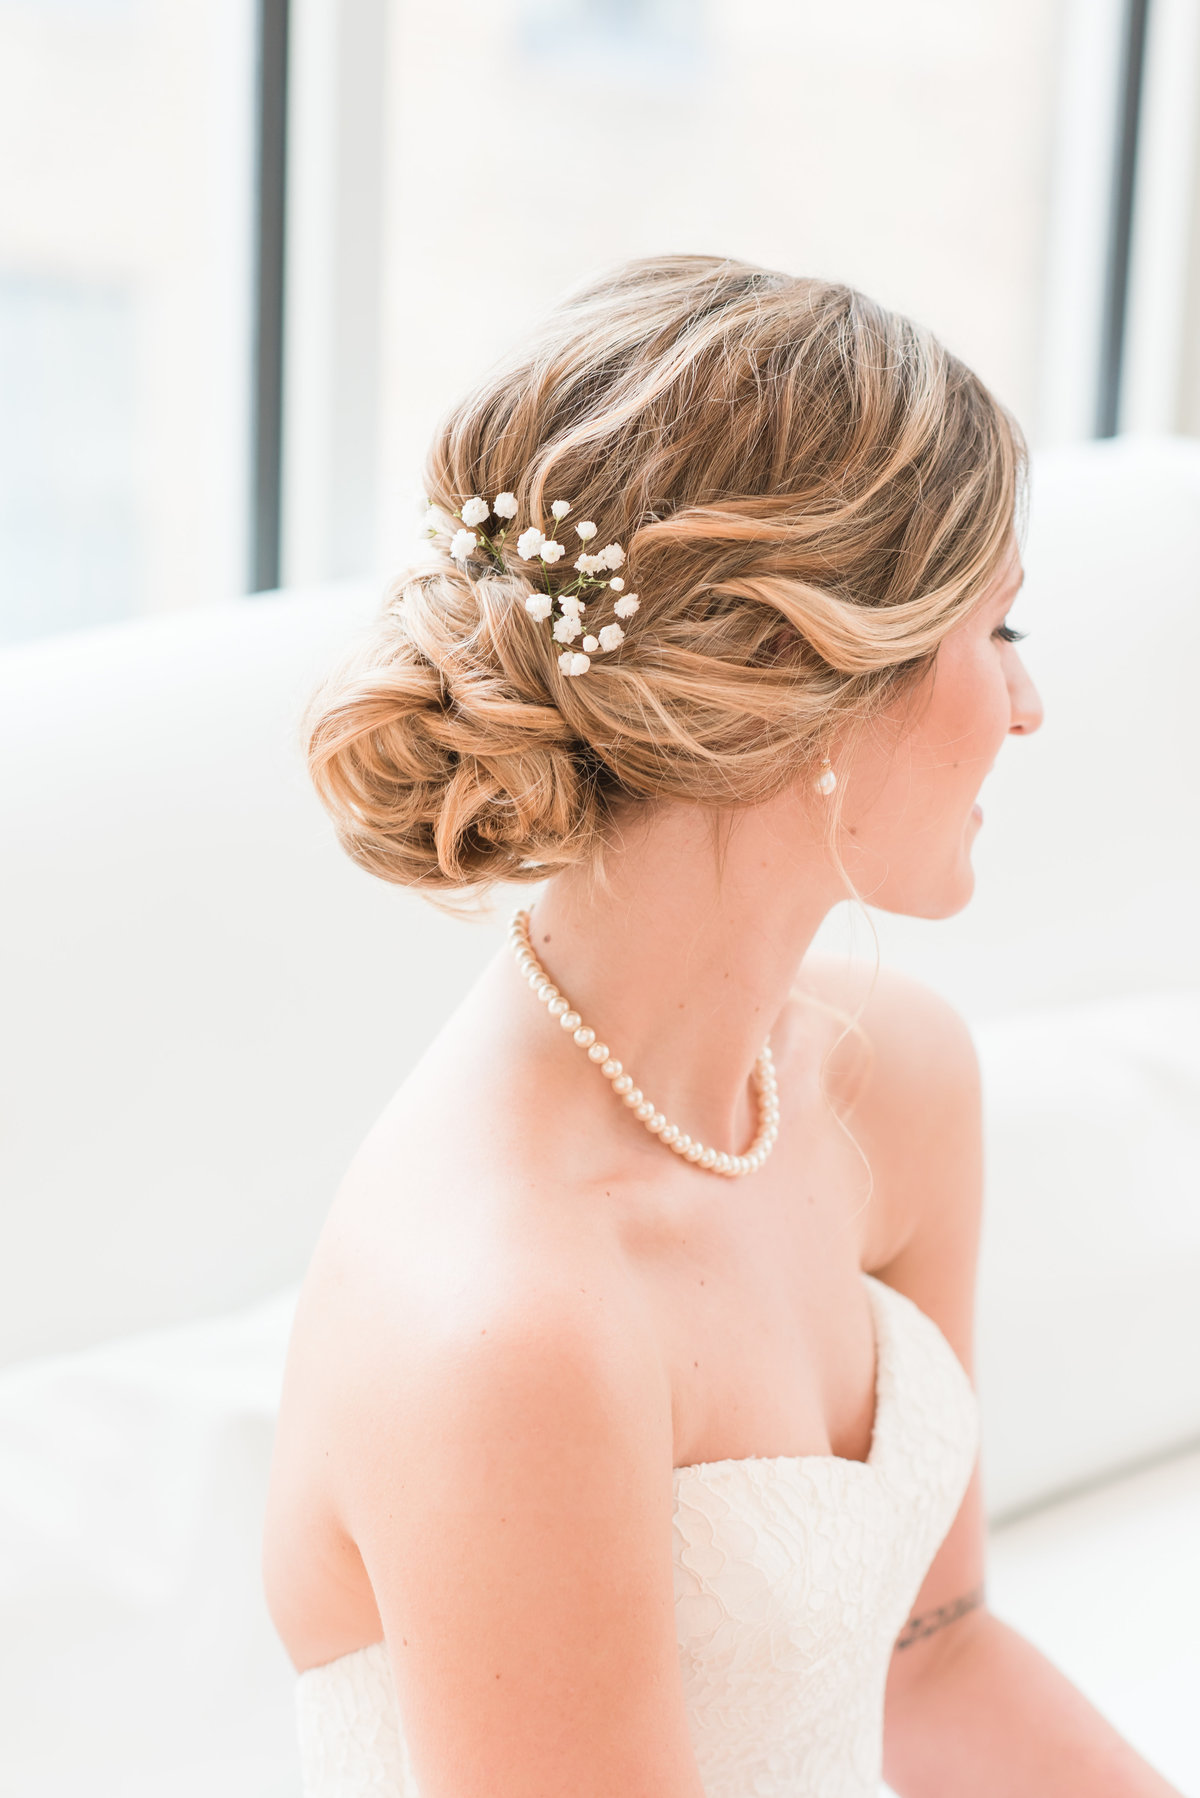 A bride sitting on a white couch wearing a strapless dress looking down with the focus on her updo hair with babies breath at the Glass Box at 230